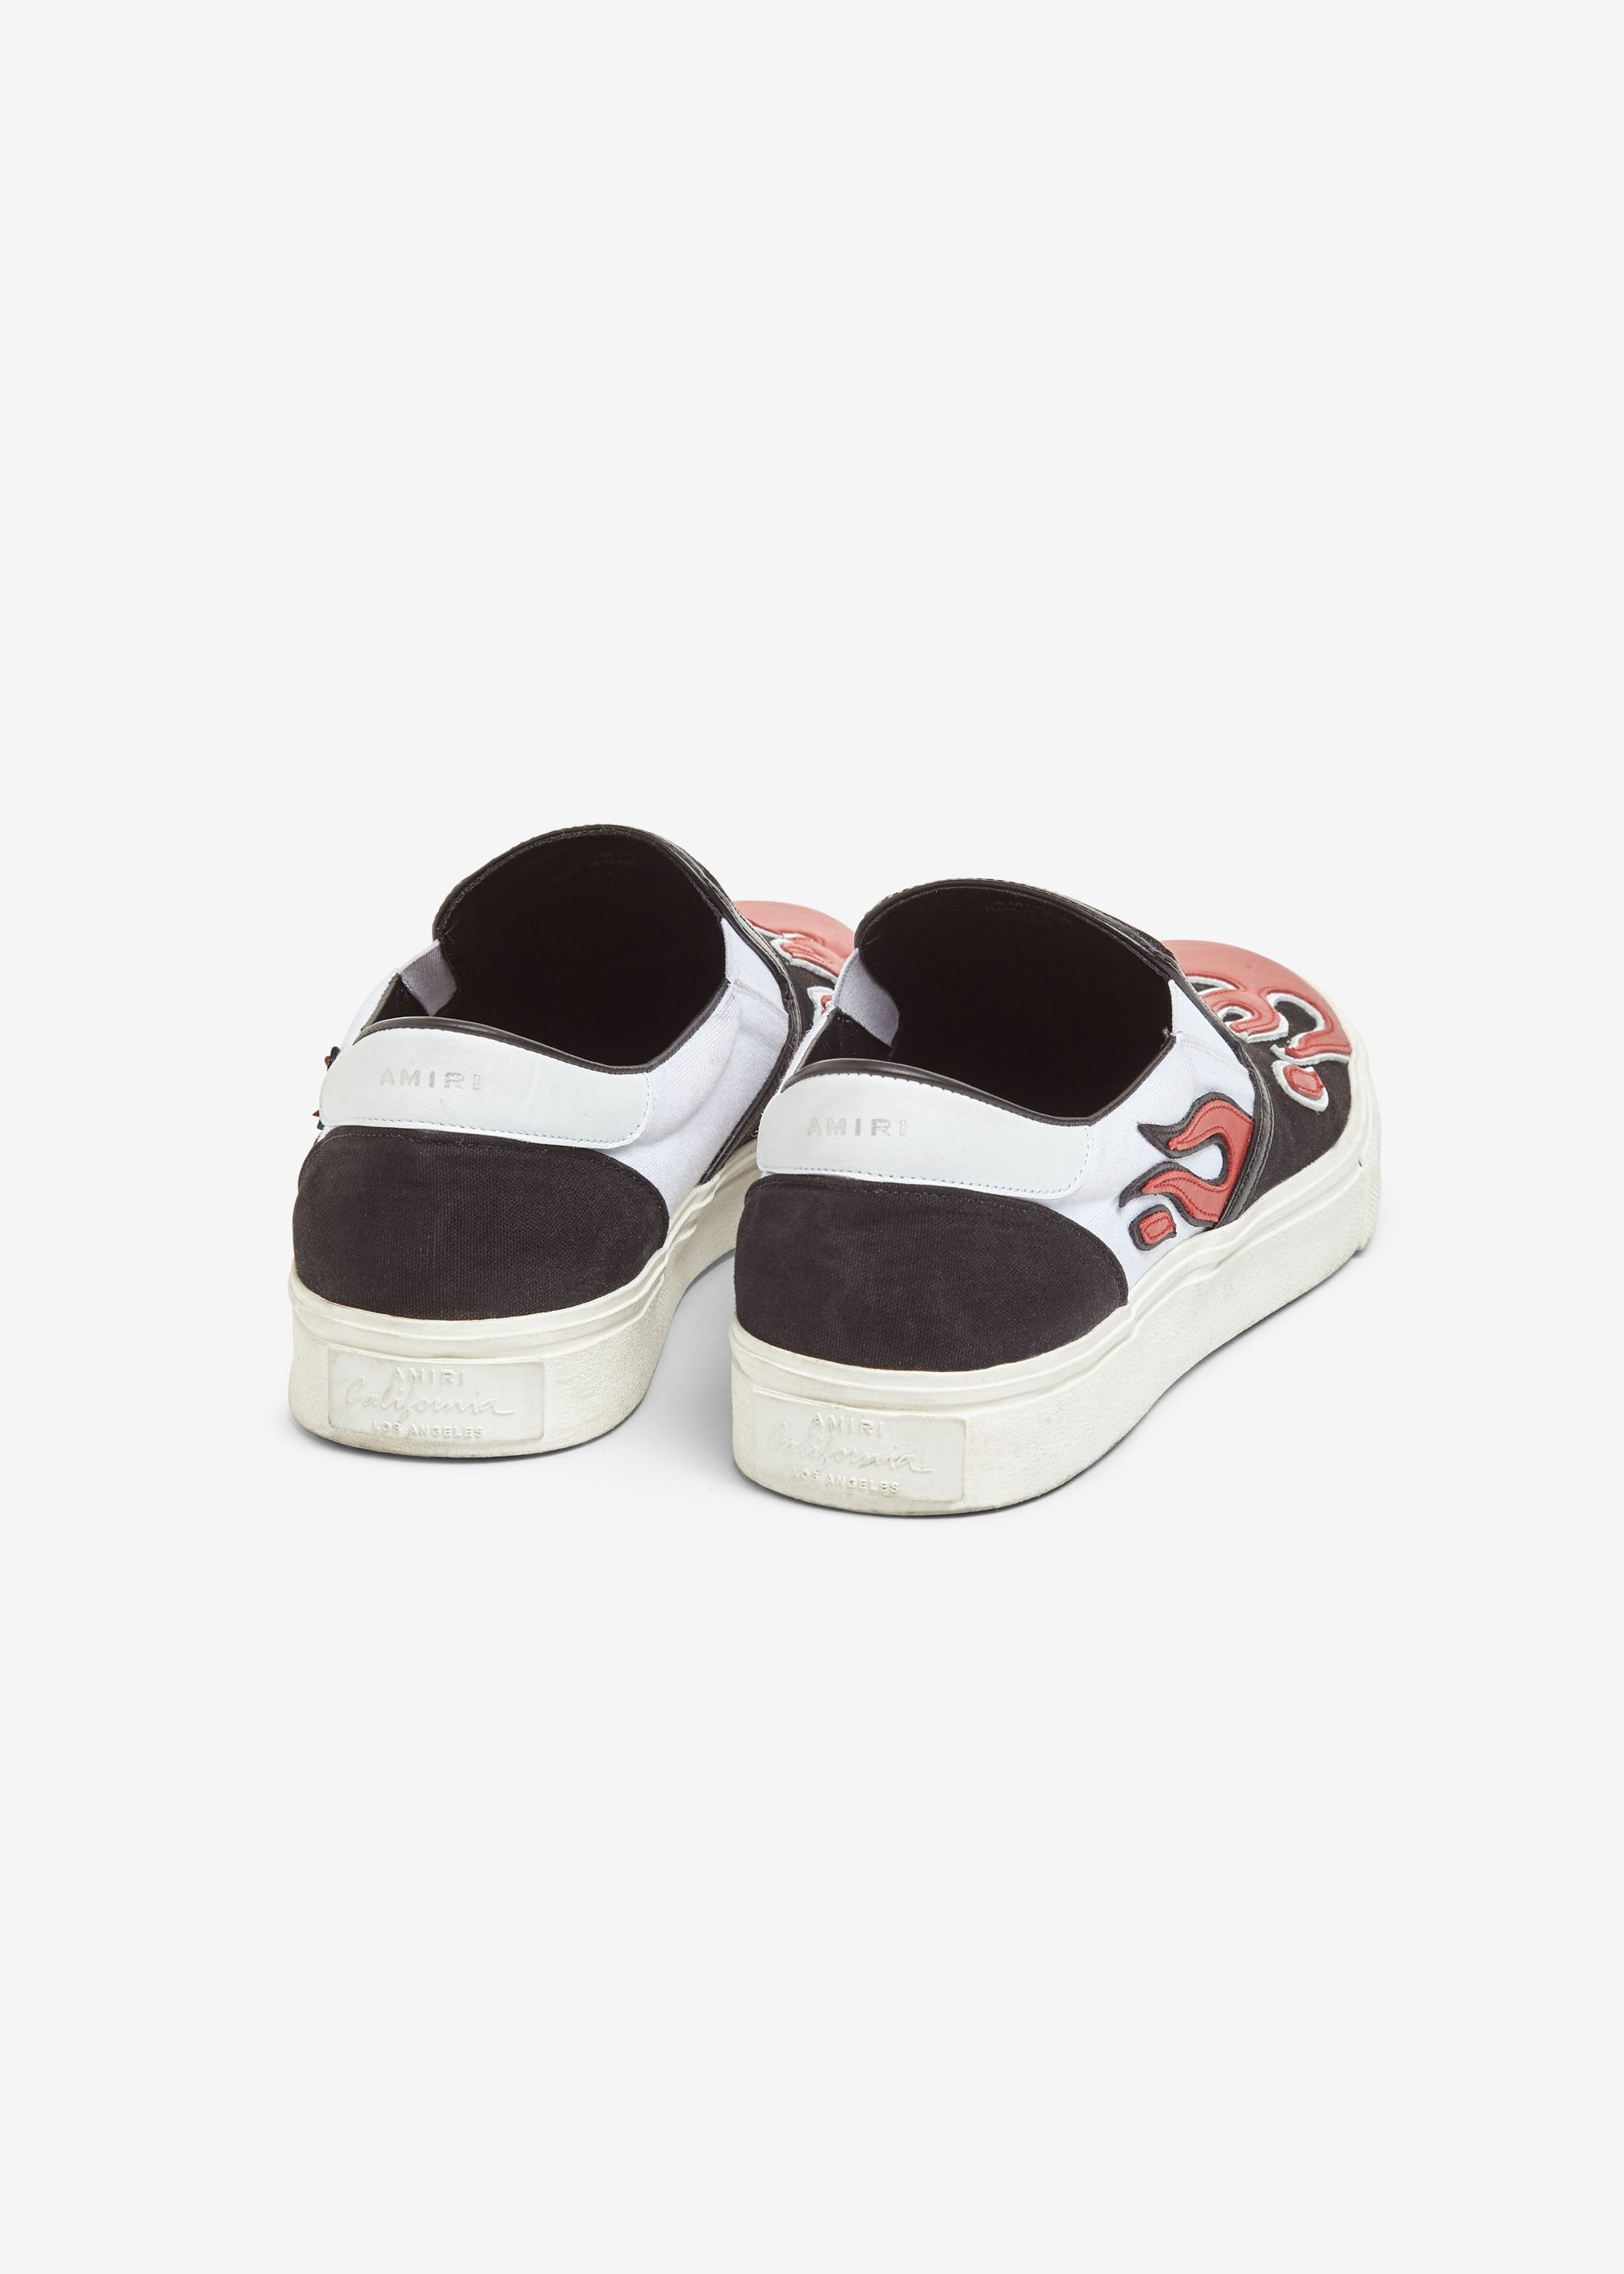 flame-slip-on-black-white-red-image-3